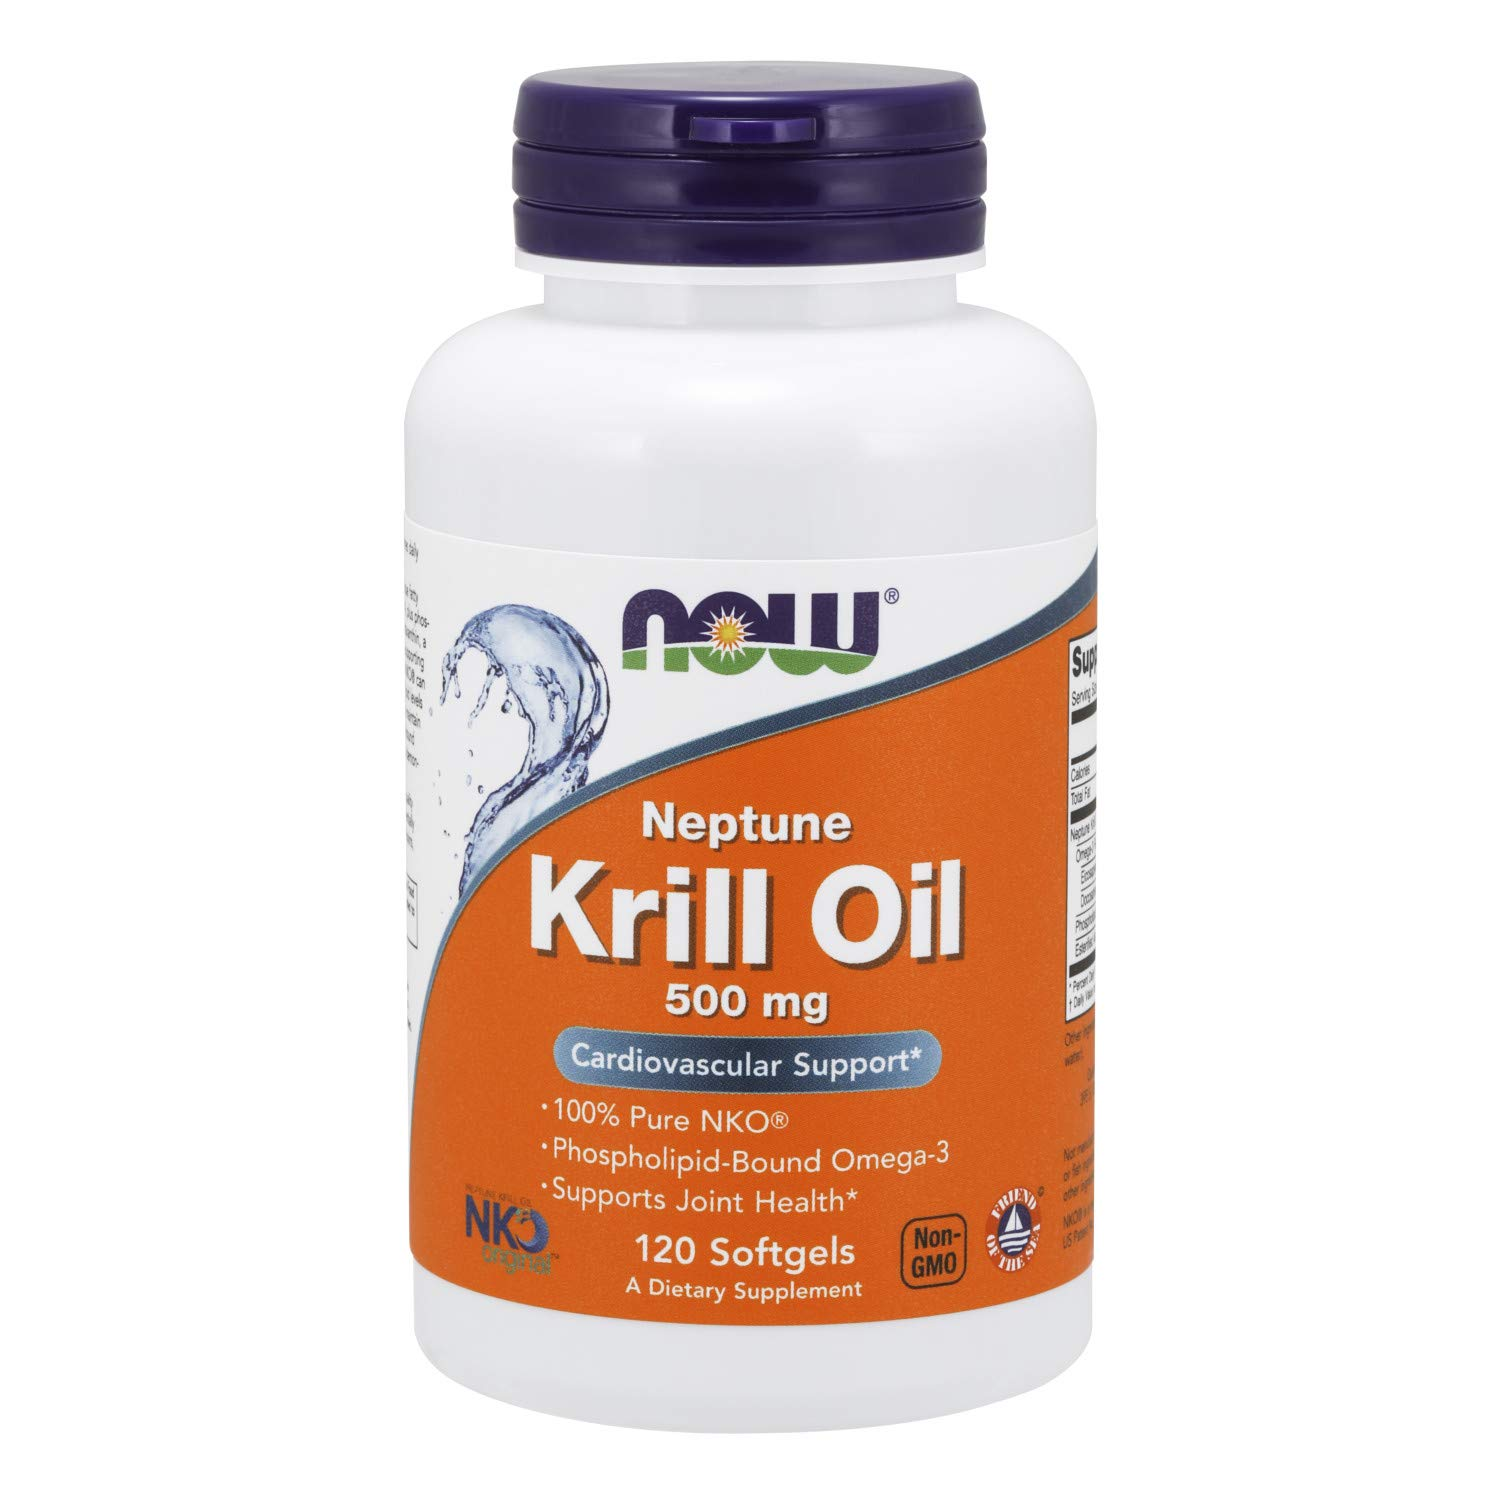 Now Supplements, Neptune Krill Oil, Phospholipid-Bound Omega-3, 120 Softgels by NOW Foods